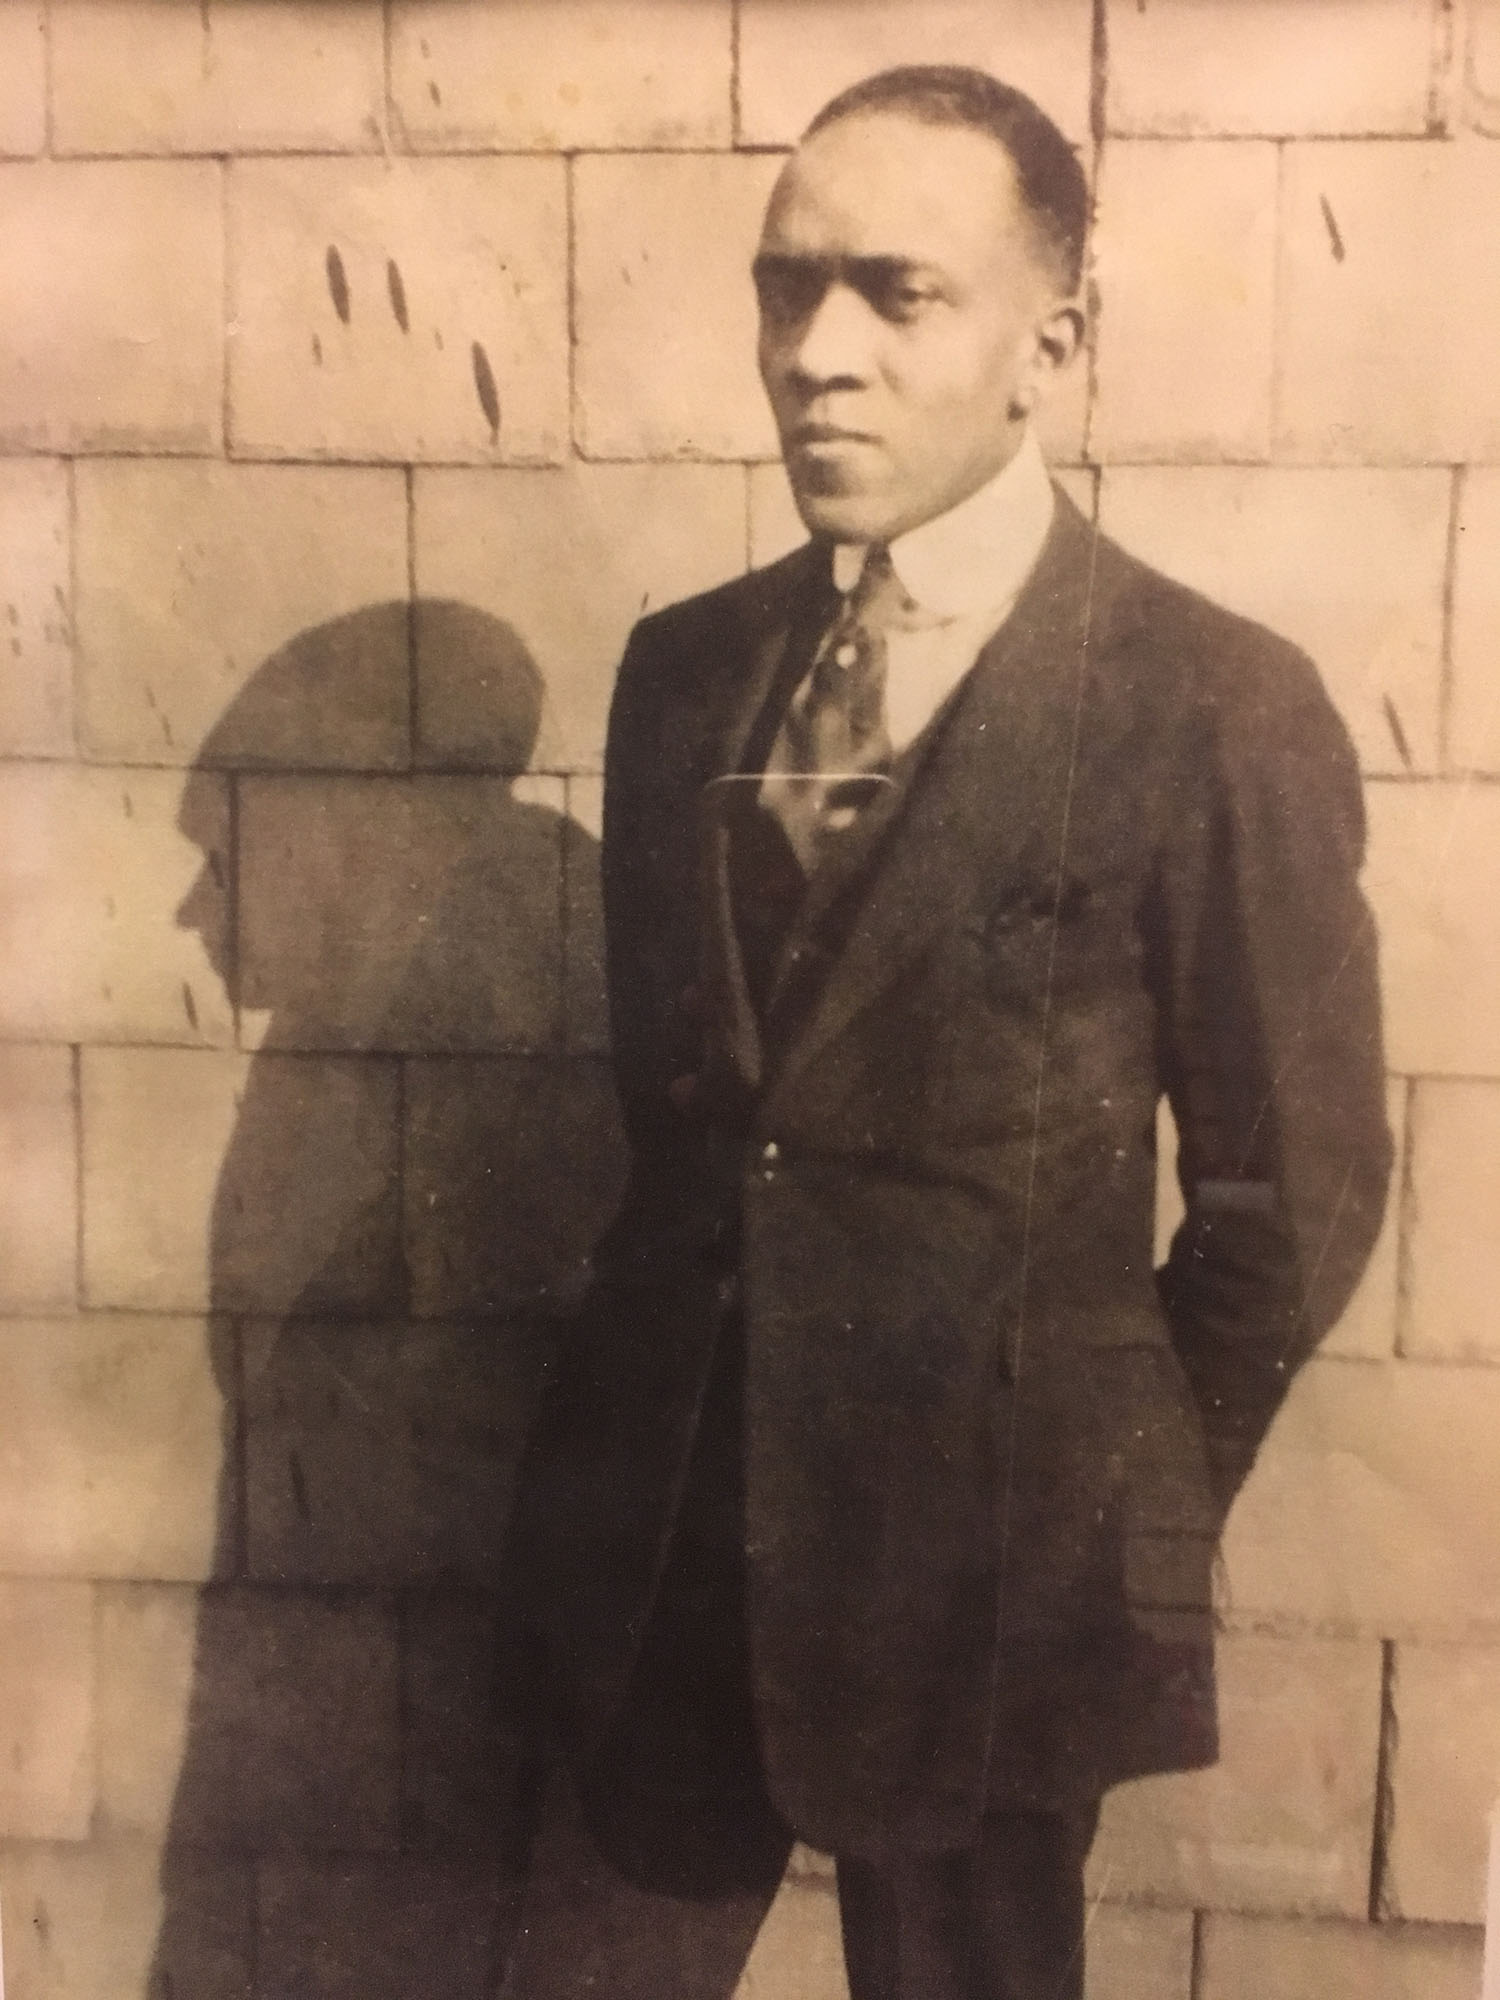 Douglass Robinson, a Pulman Porter, poses for a portrait in the Hill c. 1919. Courtesy of Ardelle Robinson.